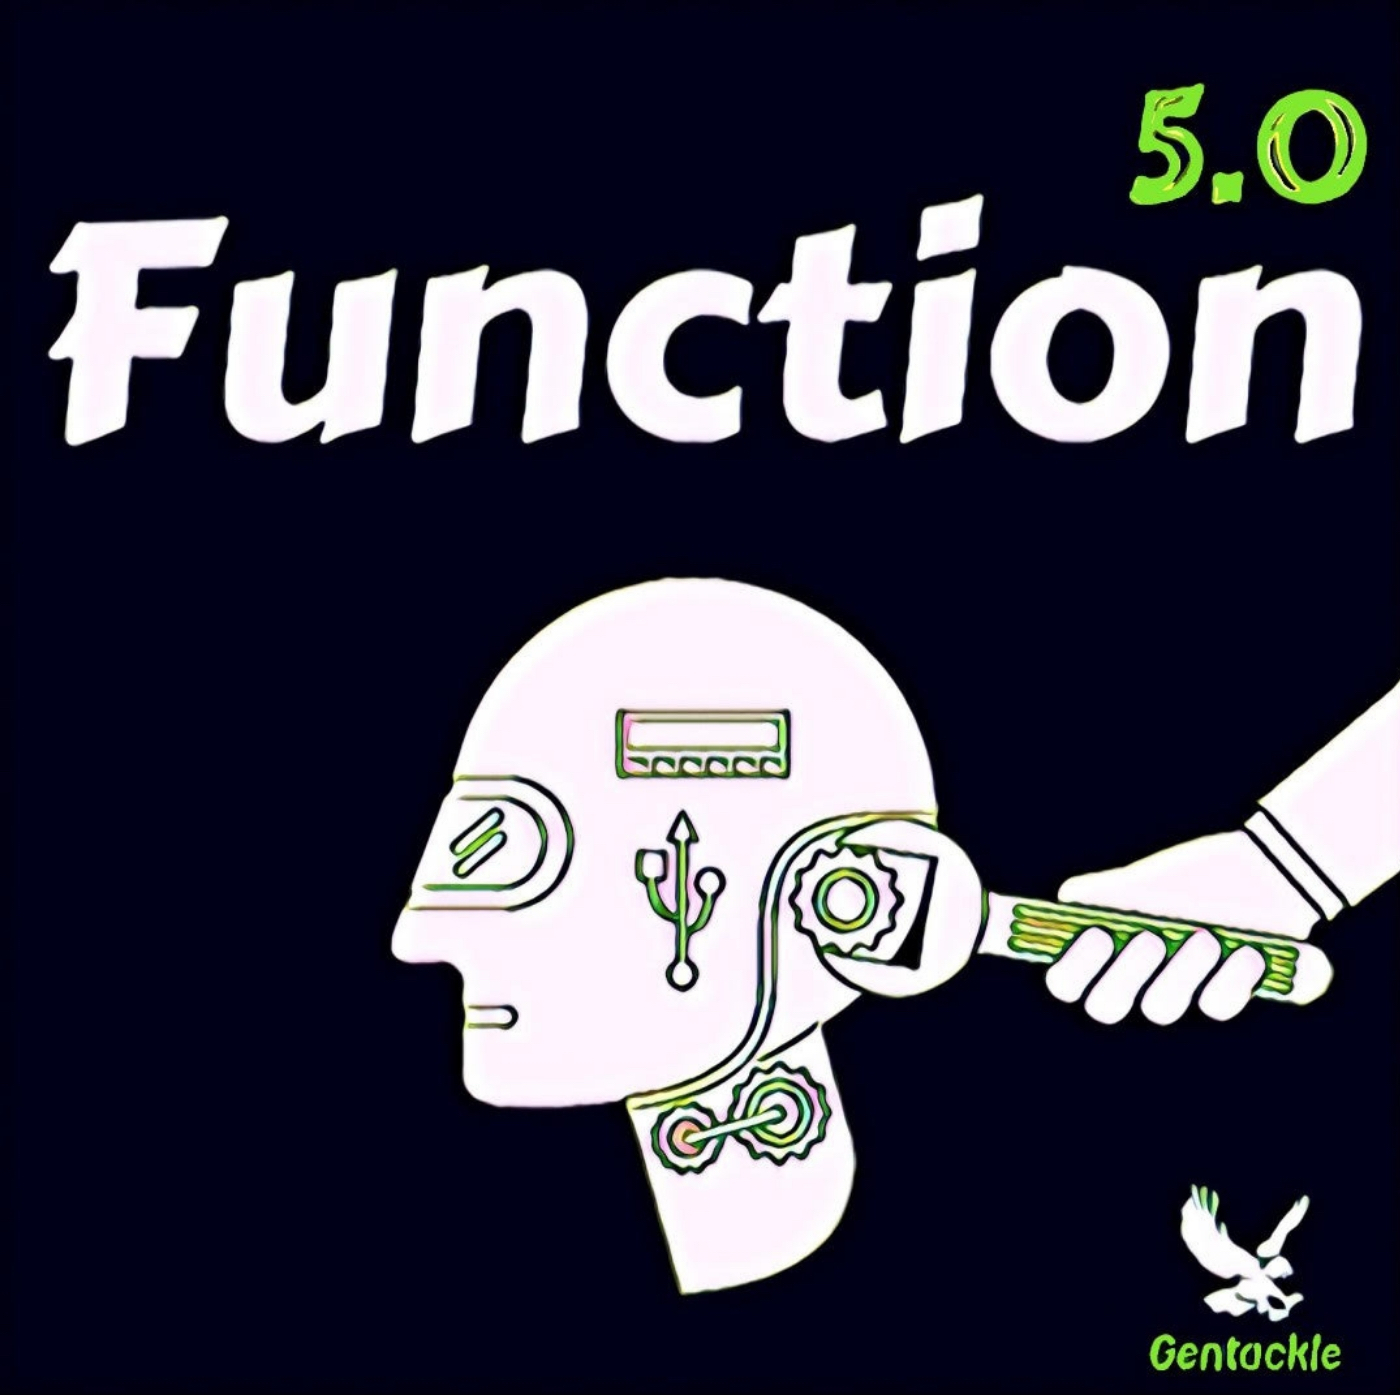 Function 5.0